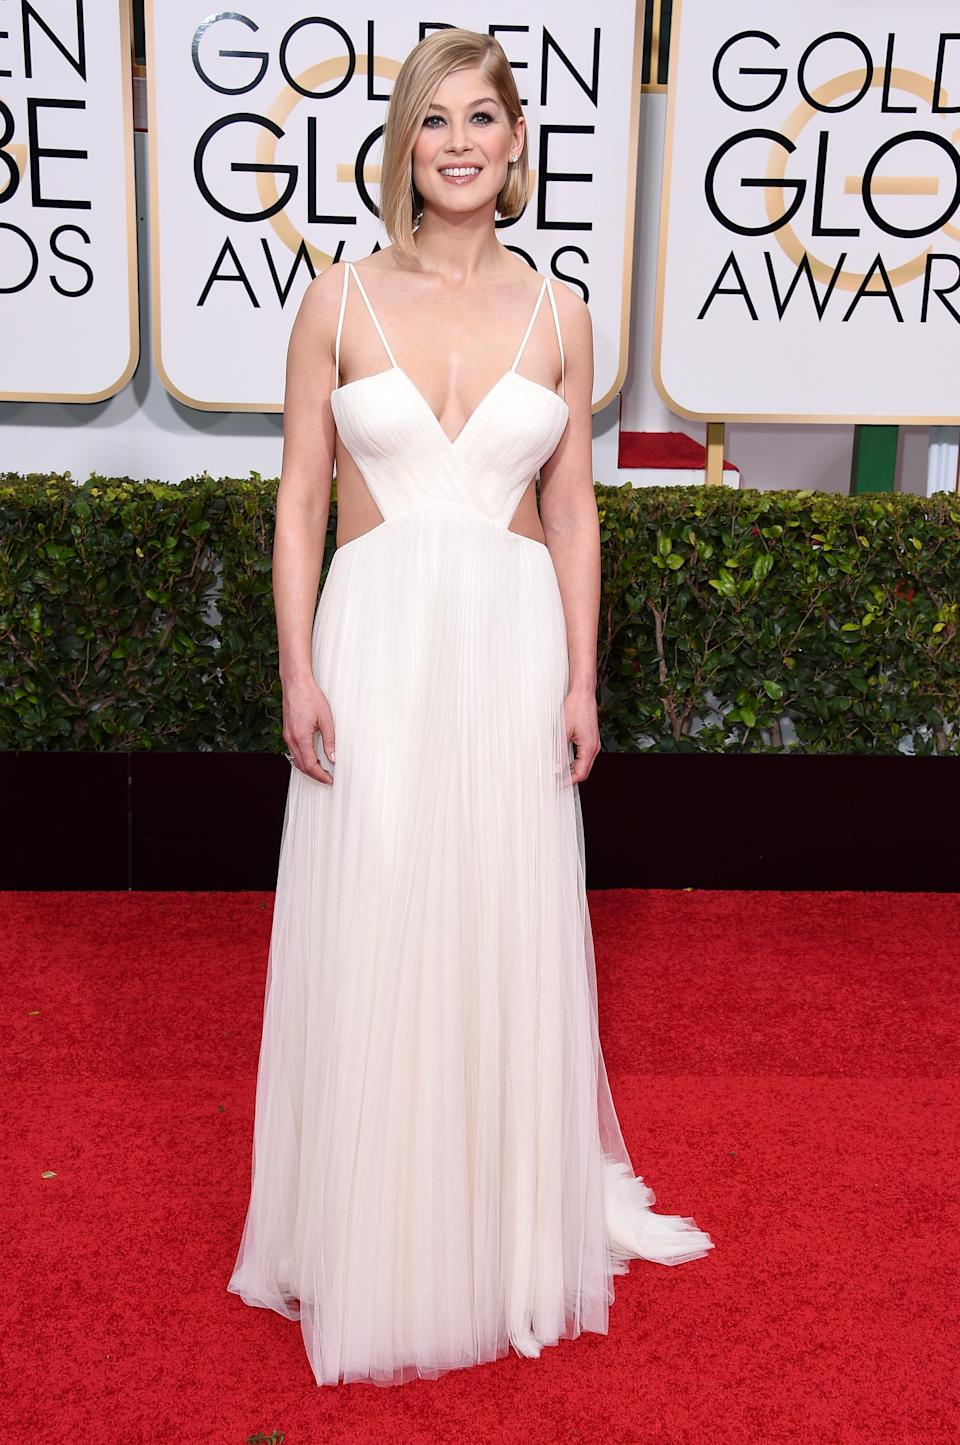 """<p>Rosamund Pike graced the 2015 Golden Globes in this angelic, white, Vera Wang gown after being nominated for best actress in a motion picture drama for her role in """"Gone Girl."""" (Image via Getty Images)</p>"""